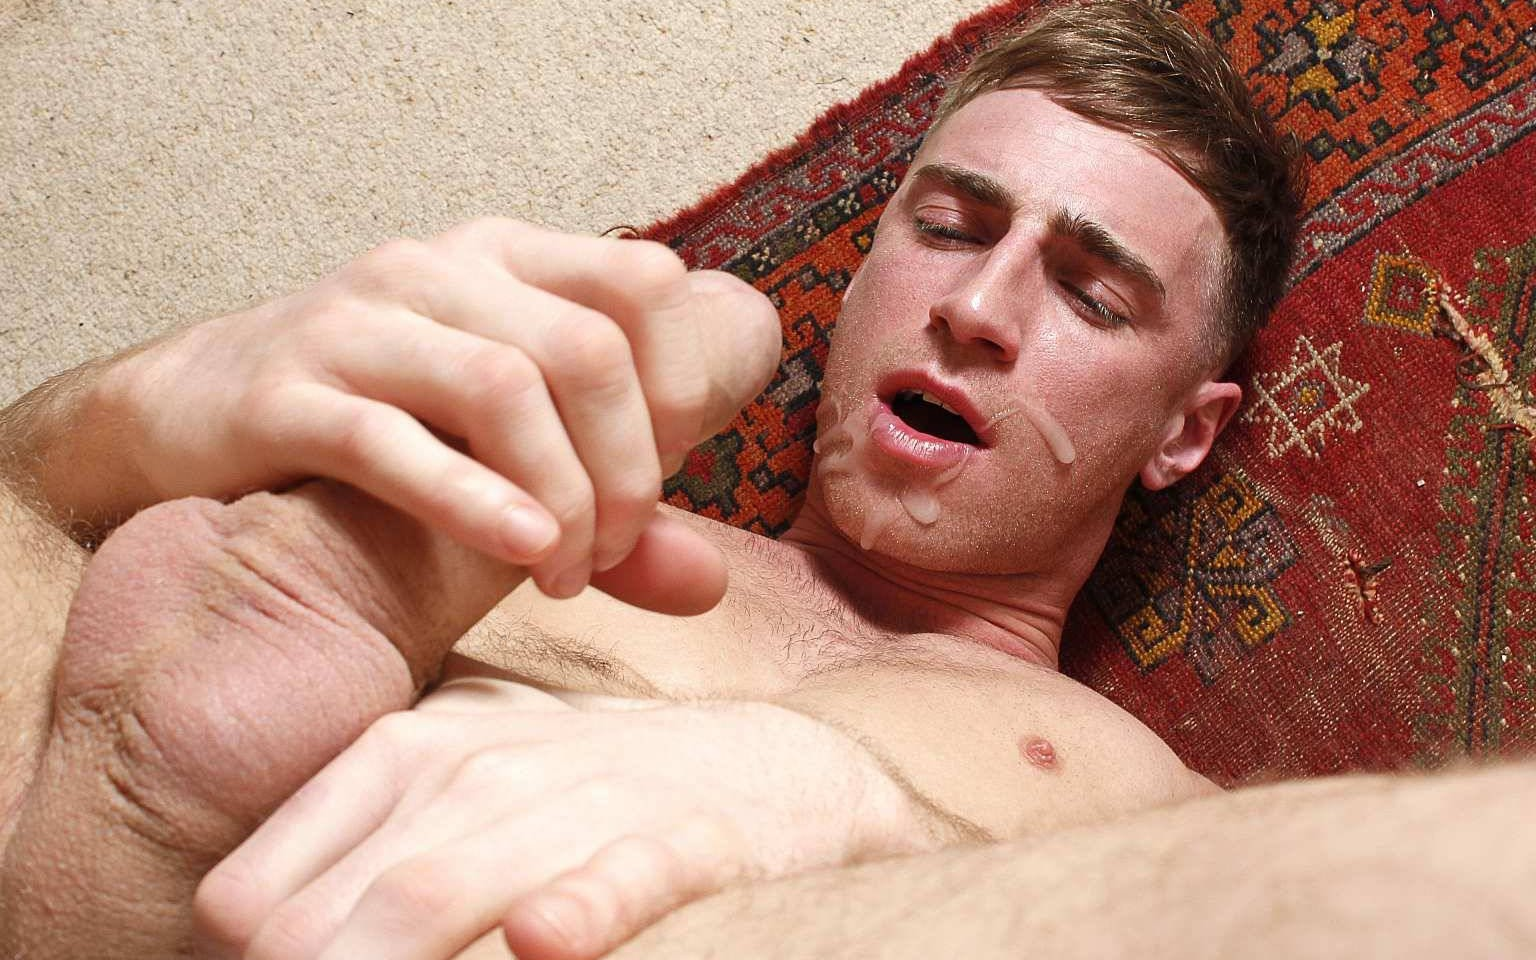 Gay Self Facial Videos